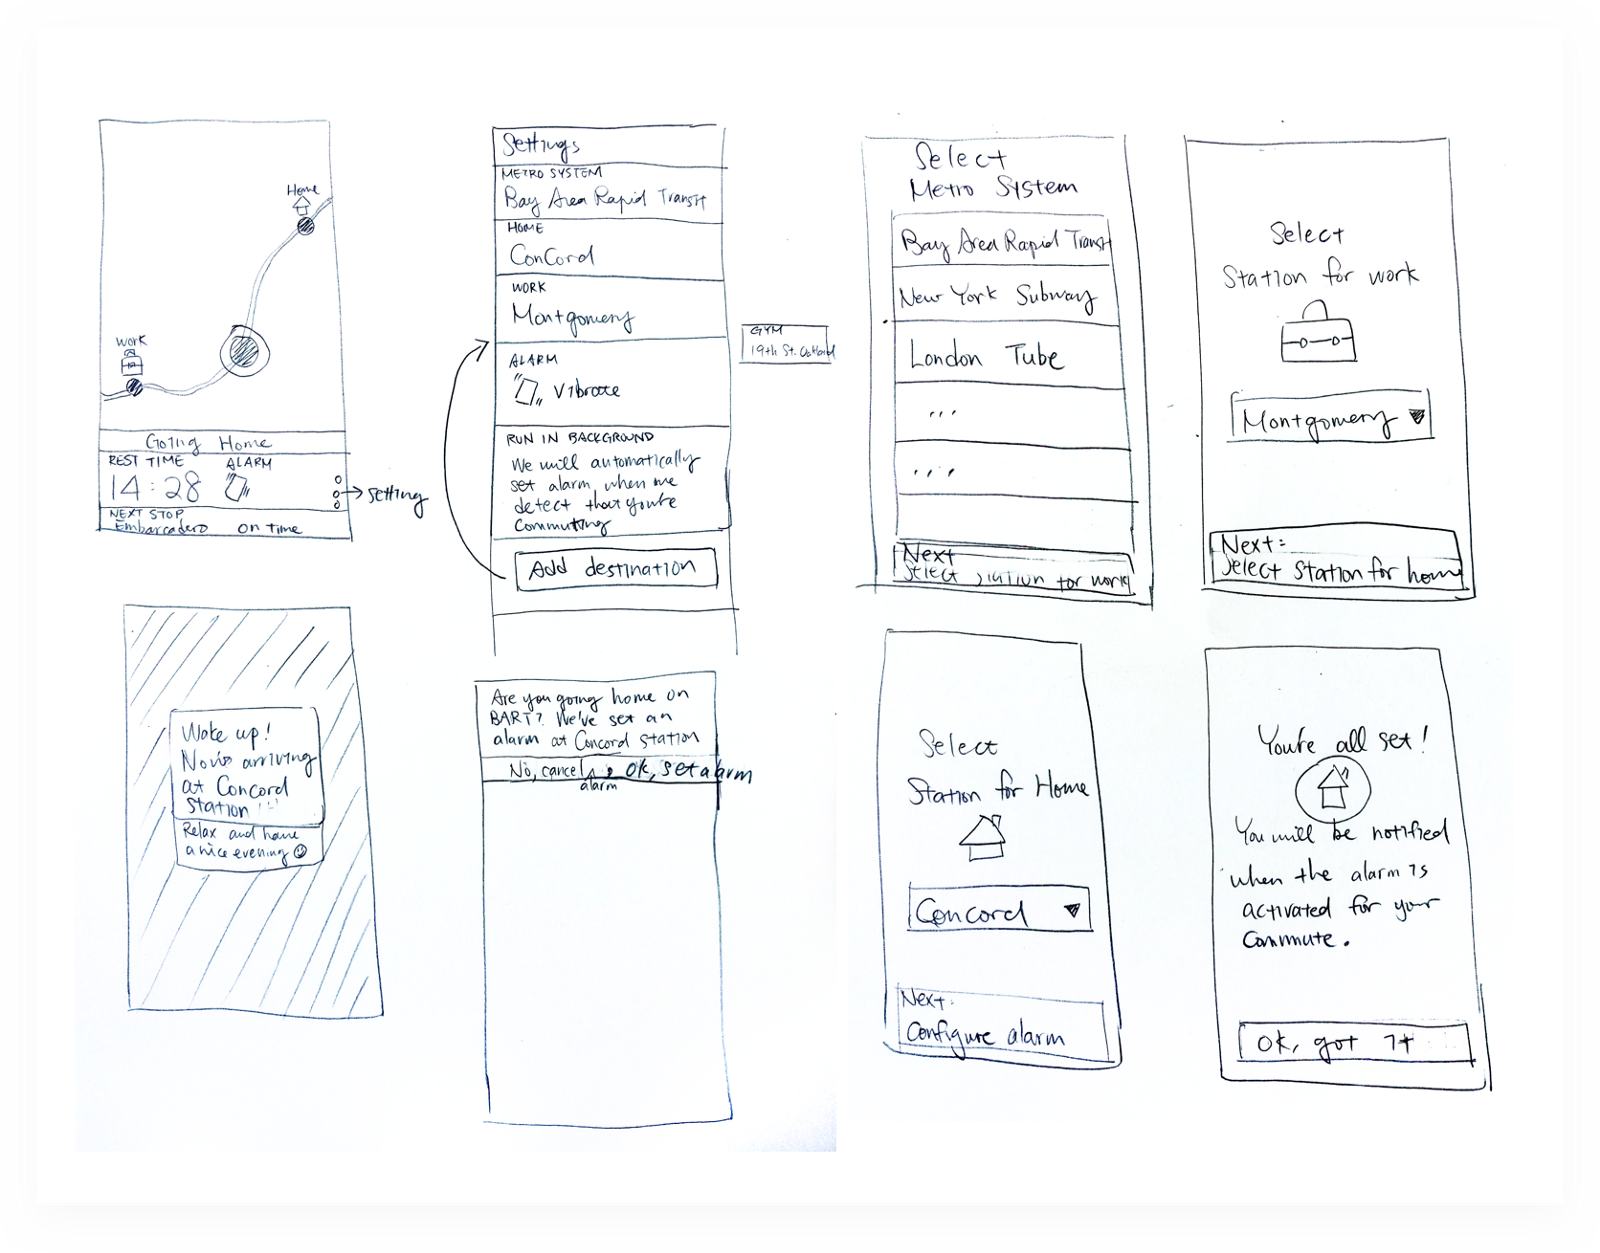 Metro Alarm A Ux Case Study Collective Concord 4 Wiring Diagram My Goal With The Sketches Was To Quickly Jot Down Thoughts Knowing That Ill Probably Make Some More Changes When I Create Detailed Wireframes